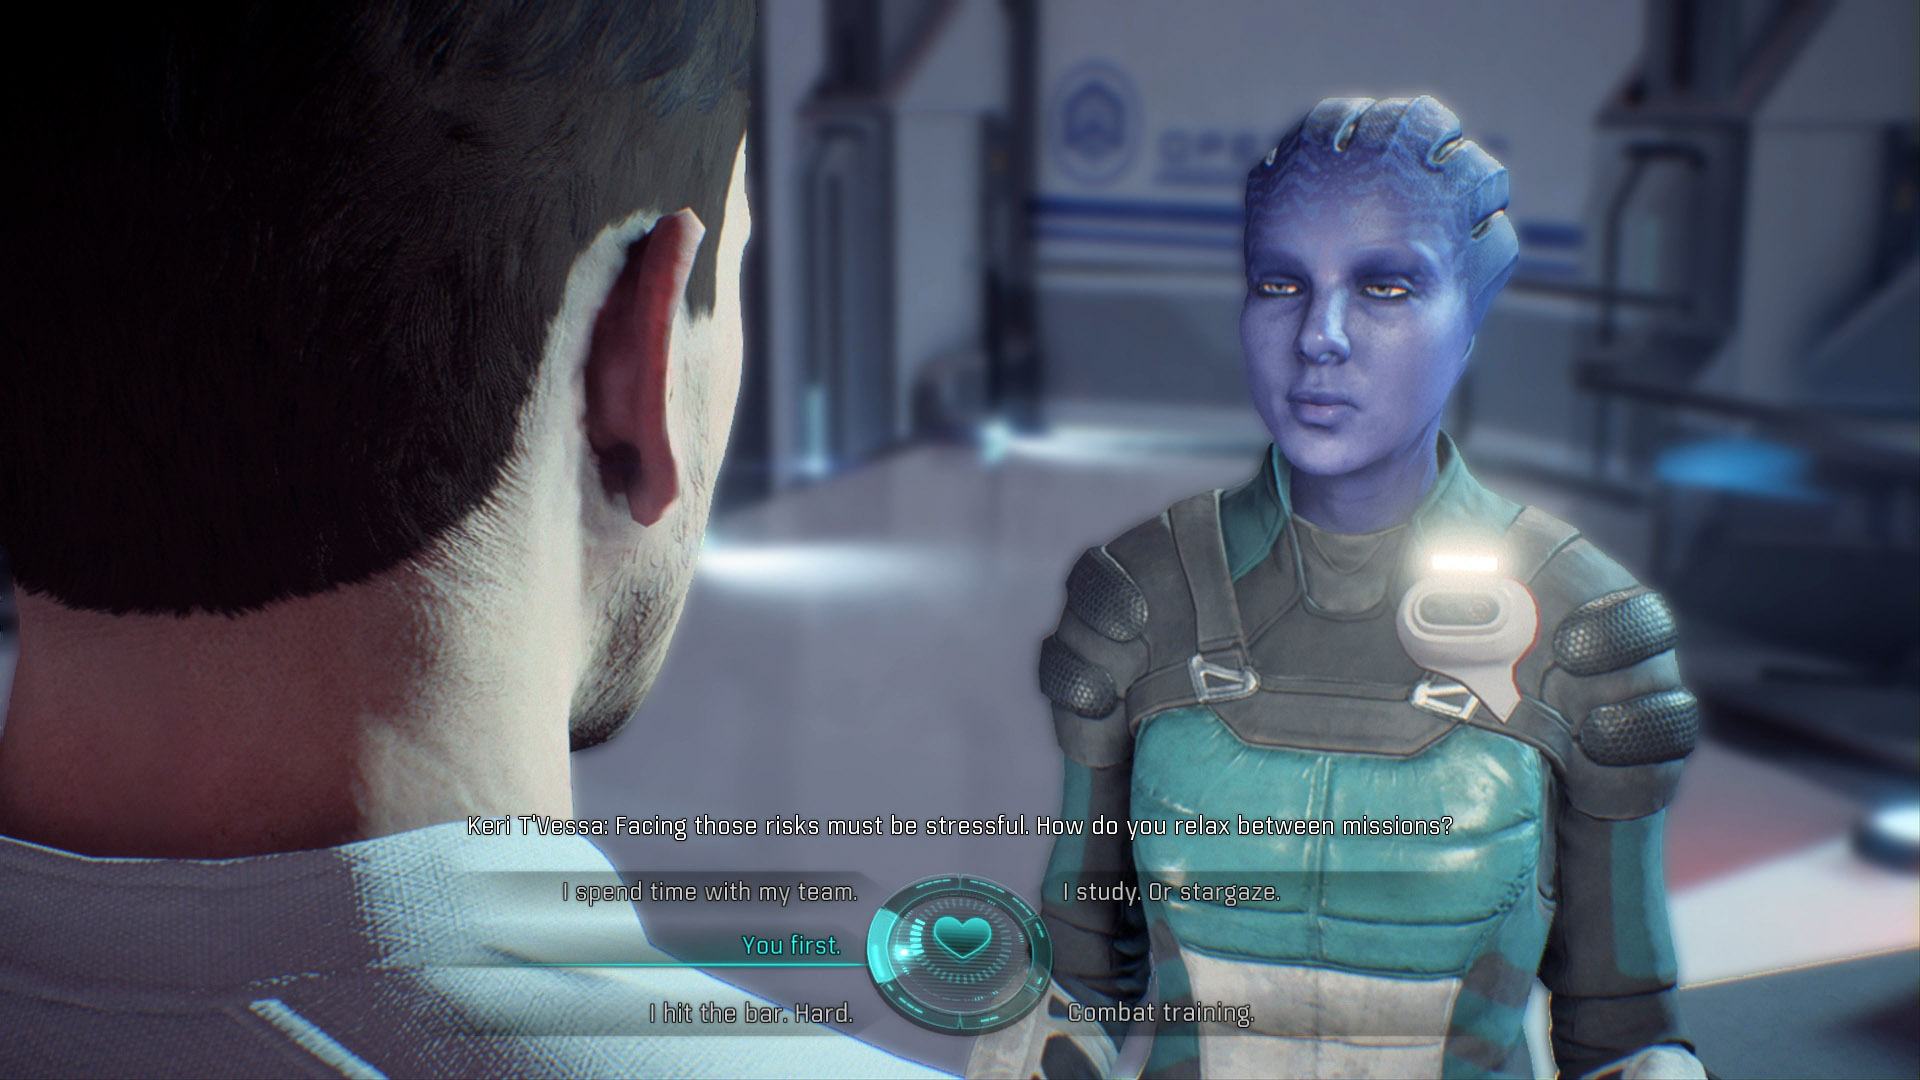 To romance Keri in Mass Effect: Andromeda, always check your emails for when she wants to continue the interview and always select the flirt option.